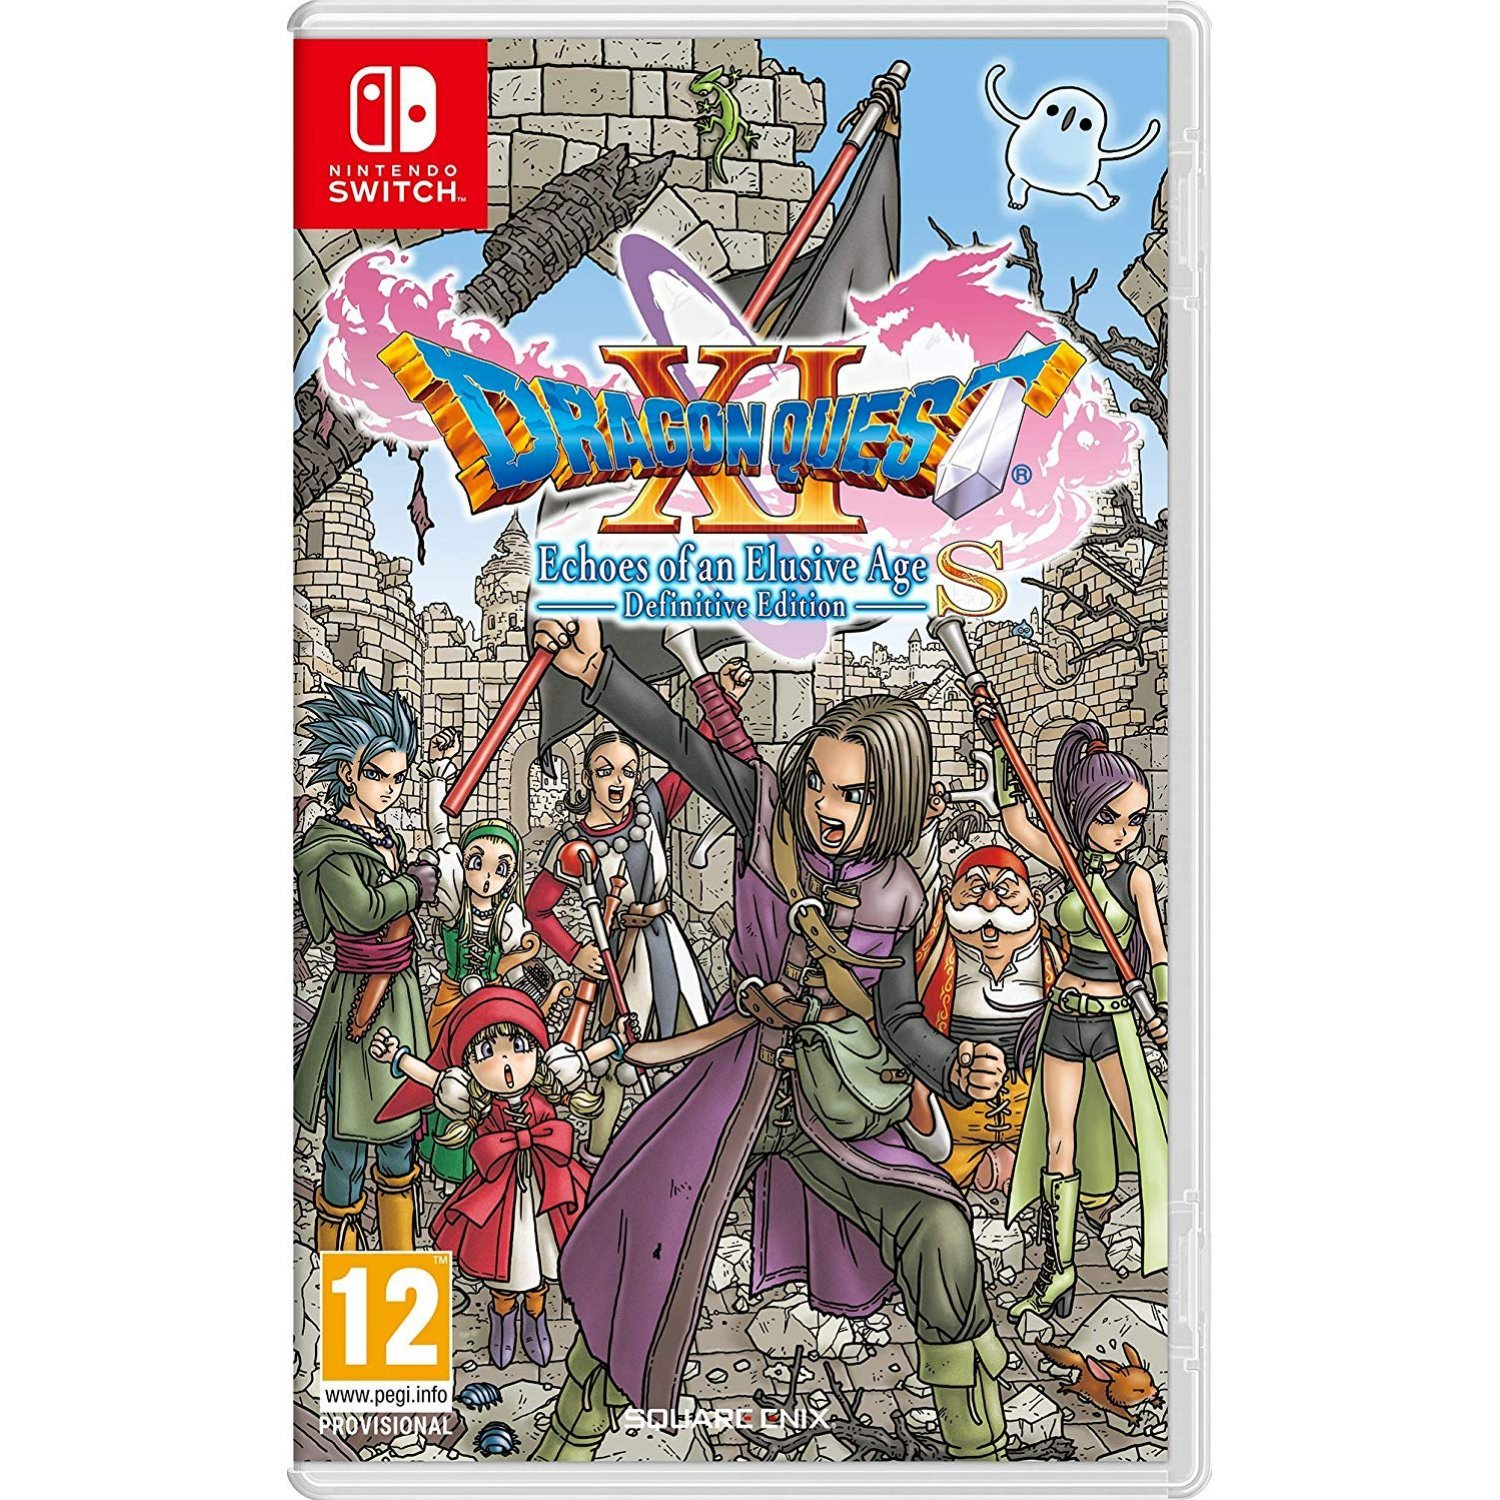 dragon-quest-xi-echoes-of-an-elusive-age-s-596429.15.jpg